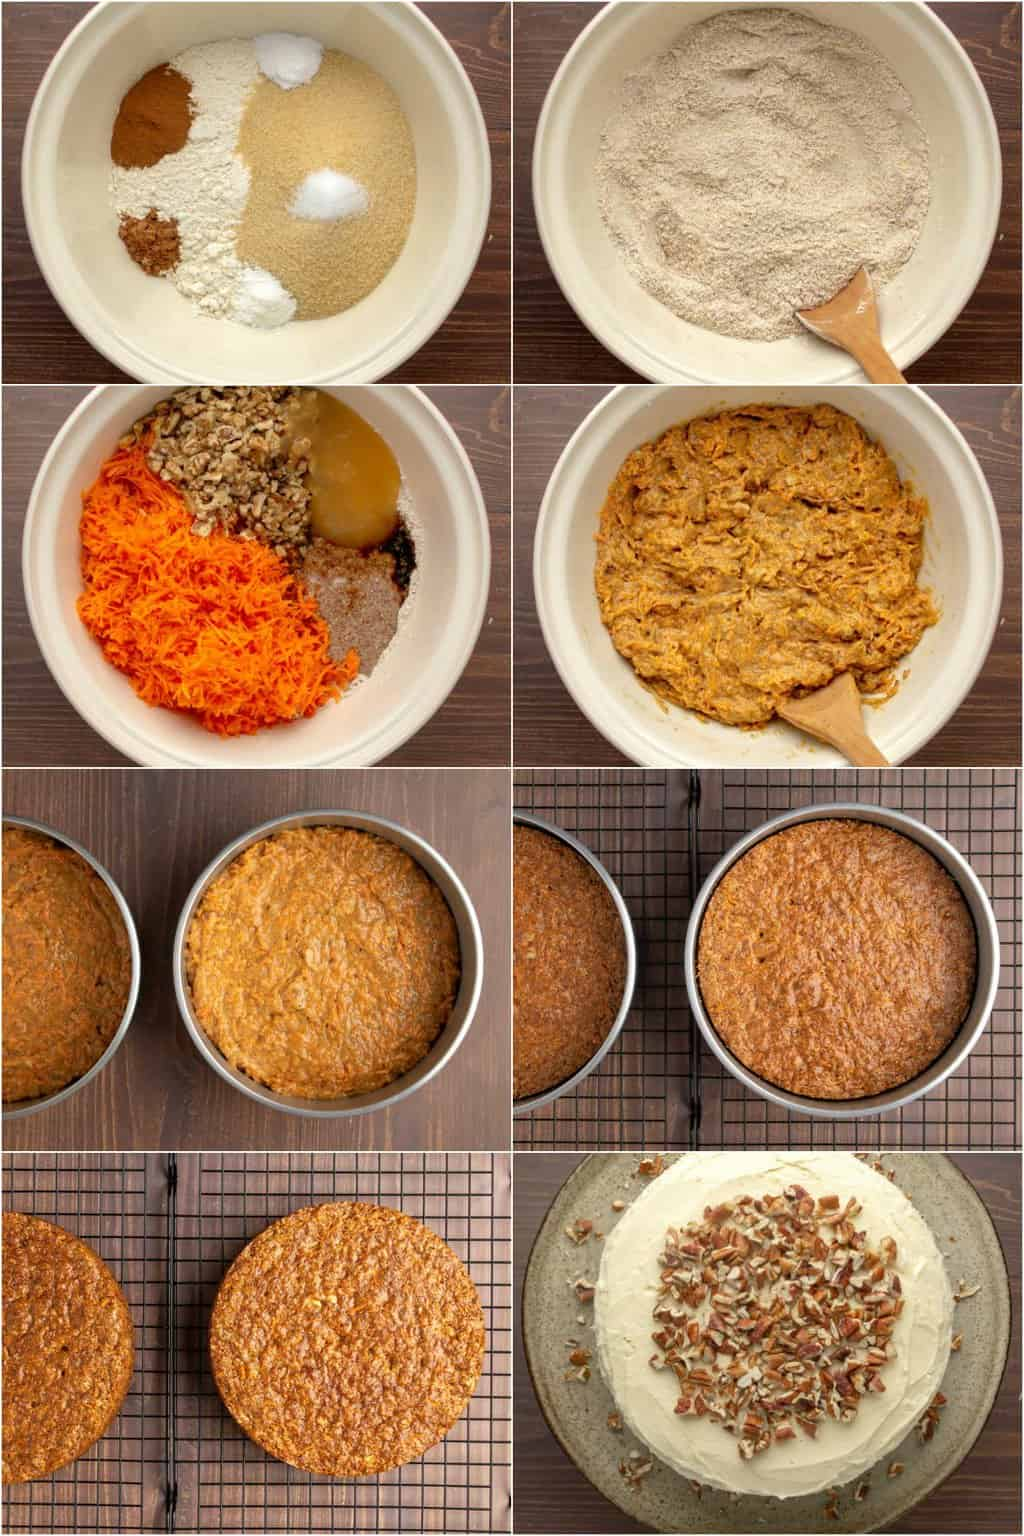 Step by step process photo collage of making a vegan gluten free carrot cake.